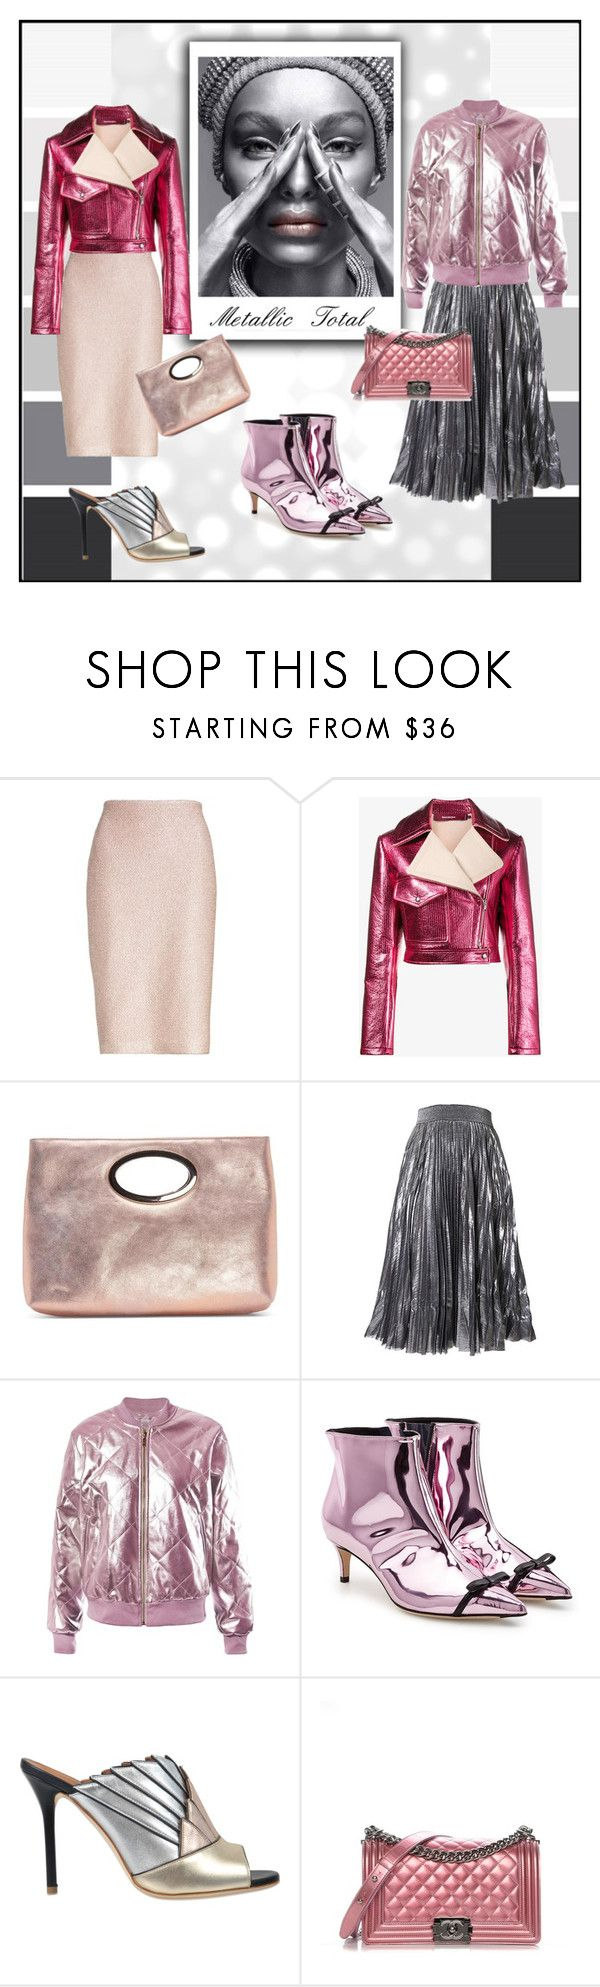 """""""All metals"""" by yaschy ❤ liked on Polyvore featuring St. John, Sies Marjan, Donald J Pliner, Sans Souci, Marco de Vincenzo, Malone Souliers, Chanel and metallic"""